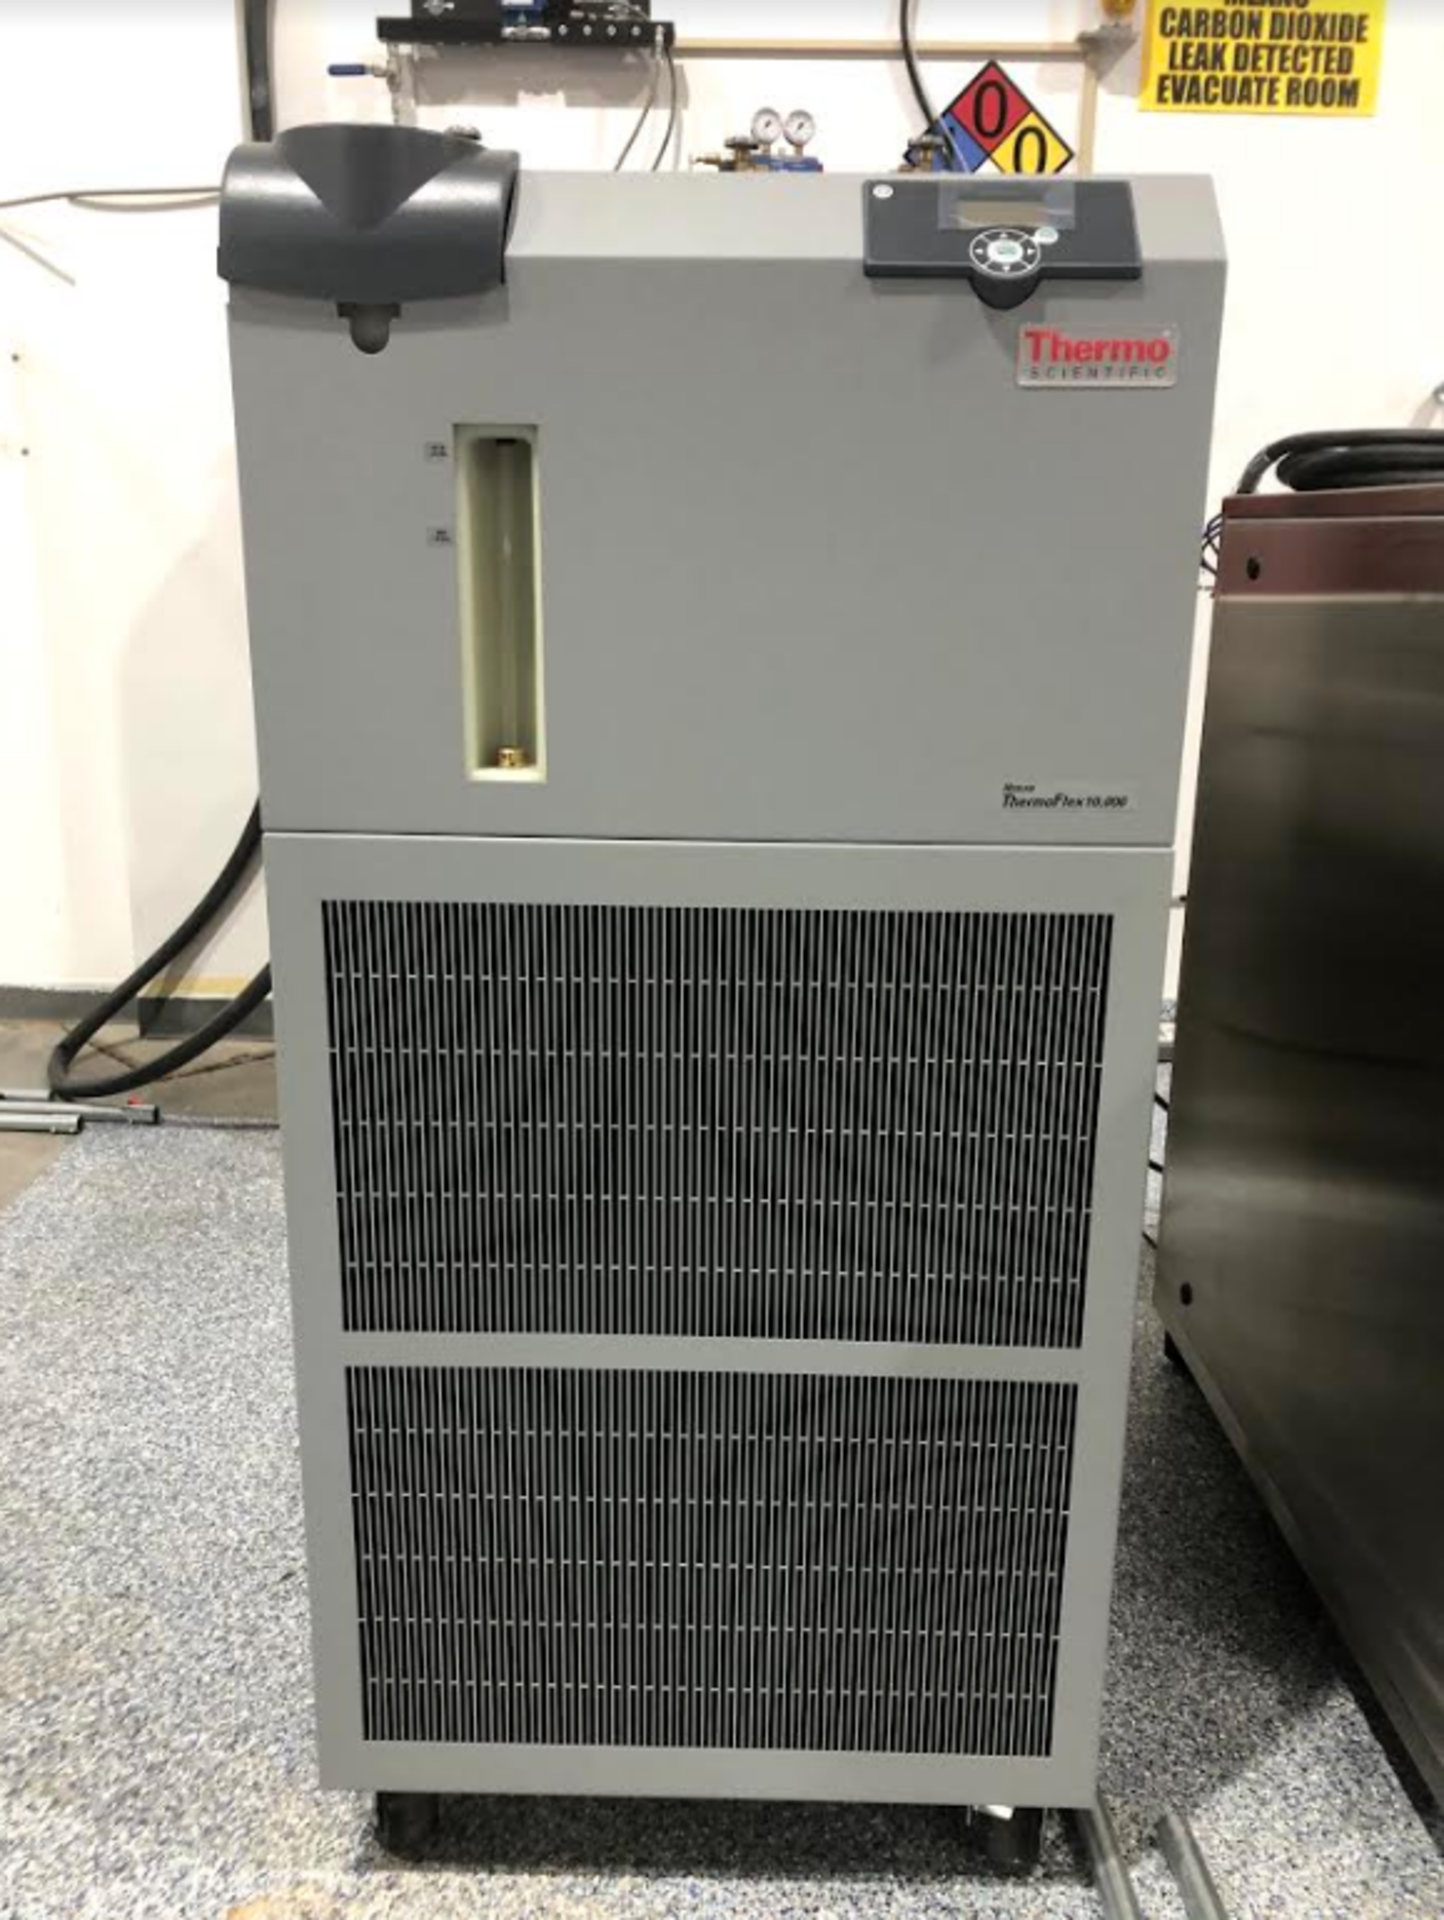 NEW Isolate Extraction Systems, Inc. (IES) Supercritical CO2 Extractor, Model# CDMH.5 - 2x-2f Hydrau - Image 3 of 5